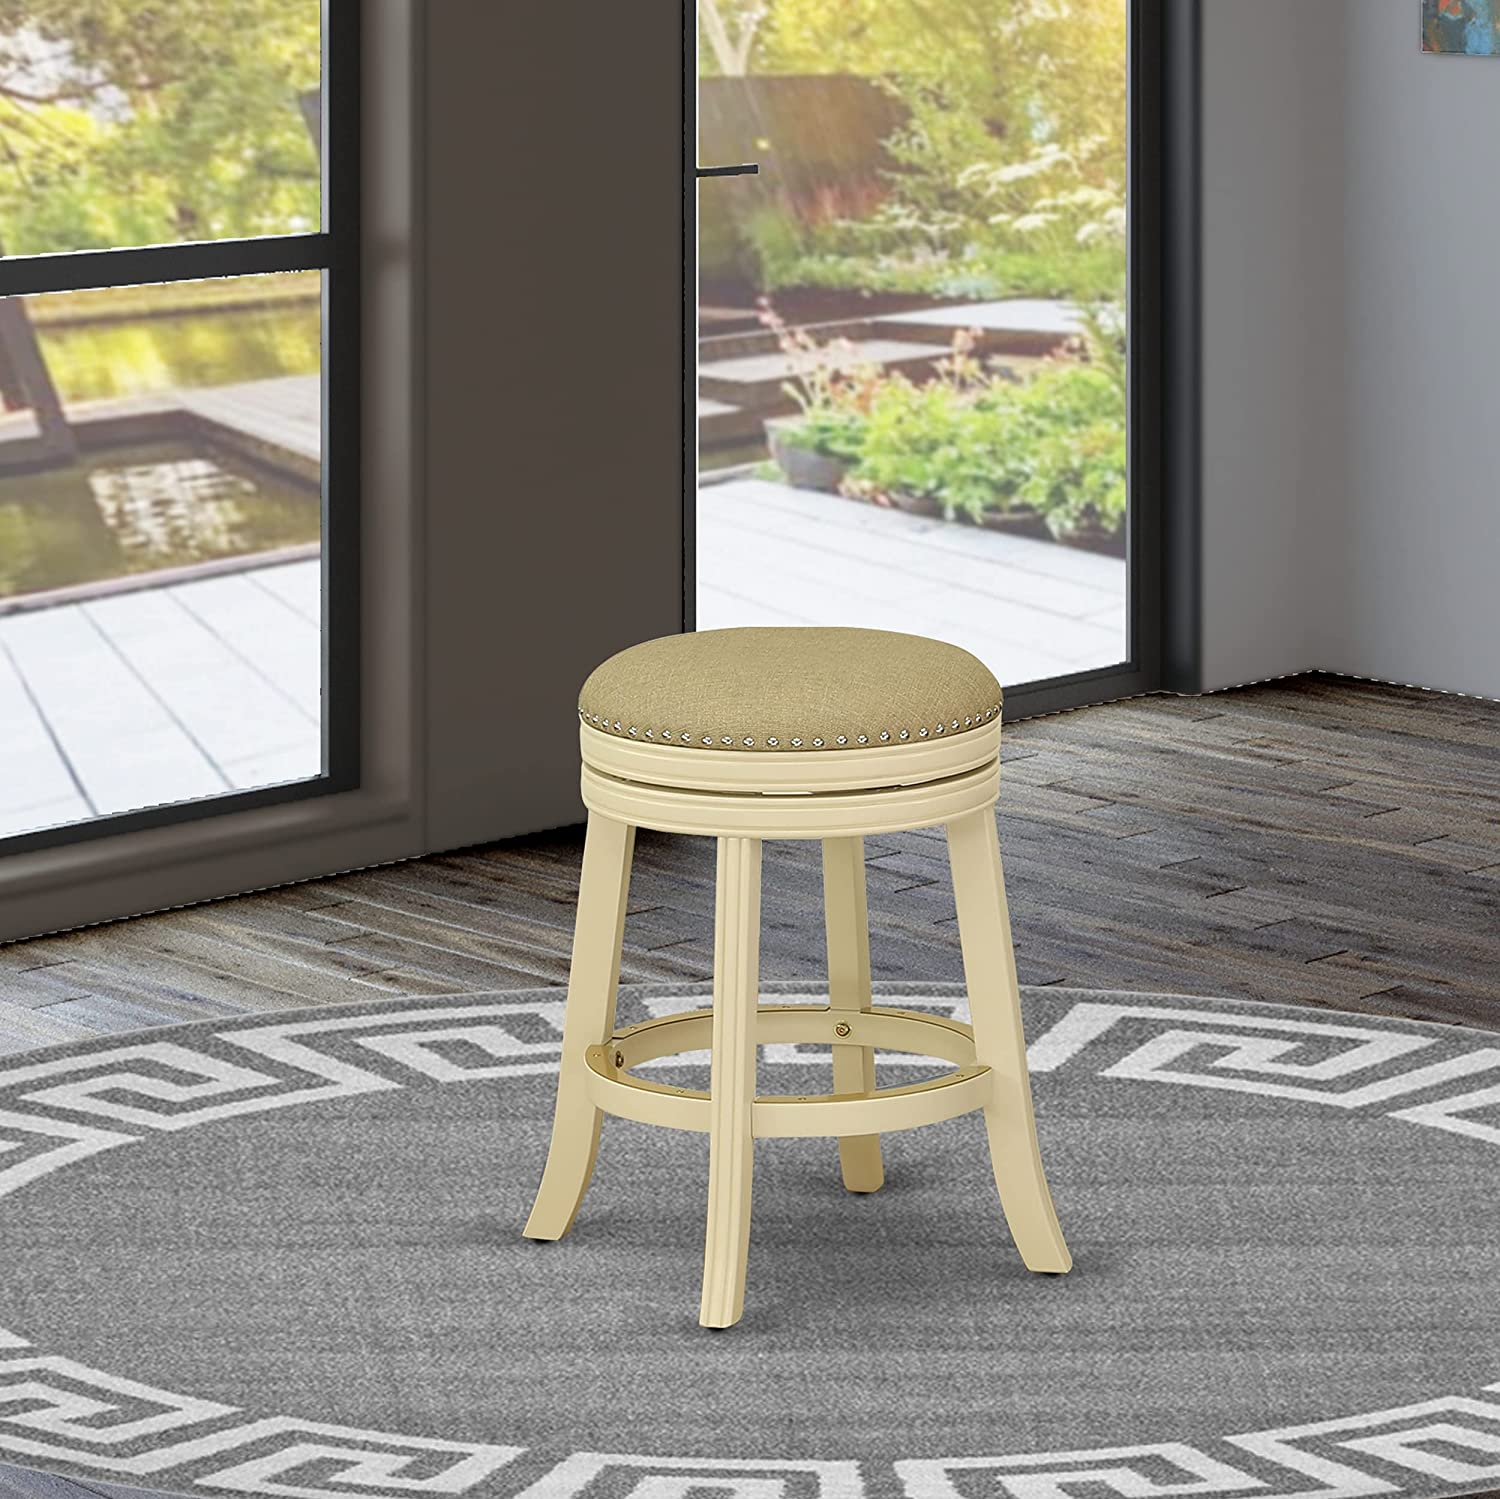 East West Furniture New York Mall Devers Swivel Backless He Seat Barstool Ranking TOP12 24''